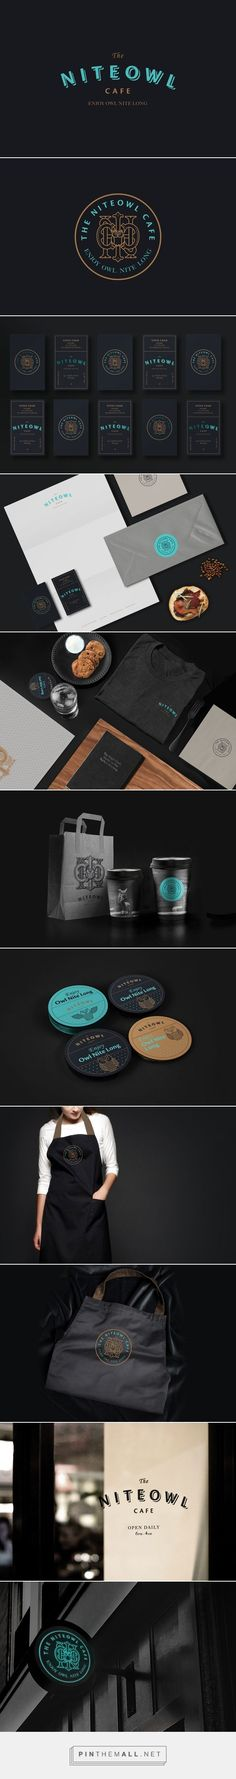 The Niteowl Cafe Restaurant Branding by ZiYu Ooi | Fivestar Branding Agency – Design and Branding Agency & Curated Inspiration Gallery